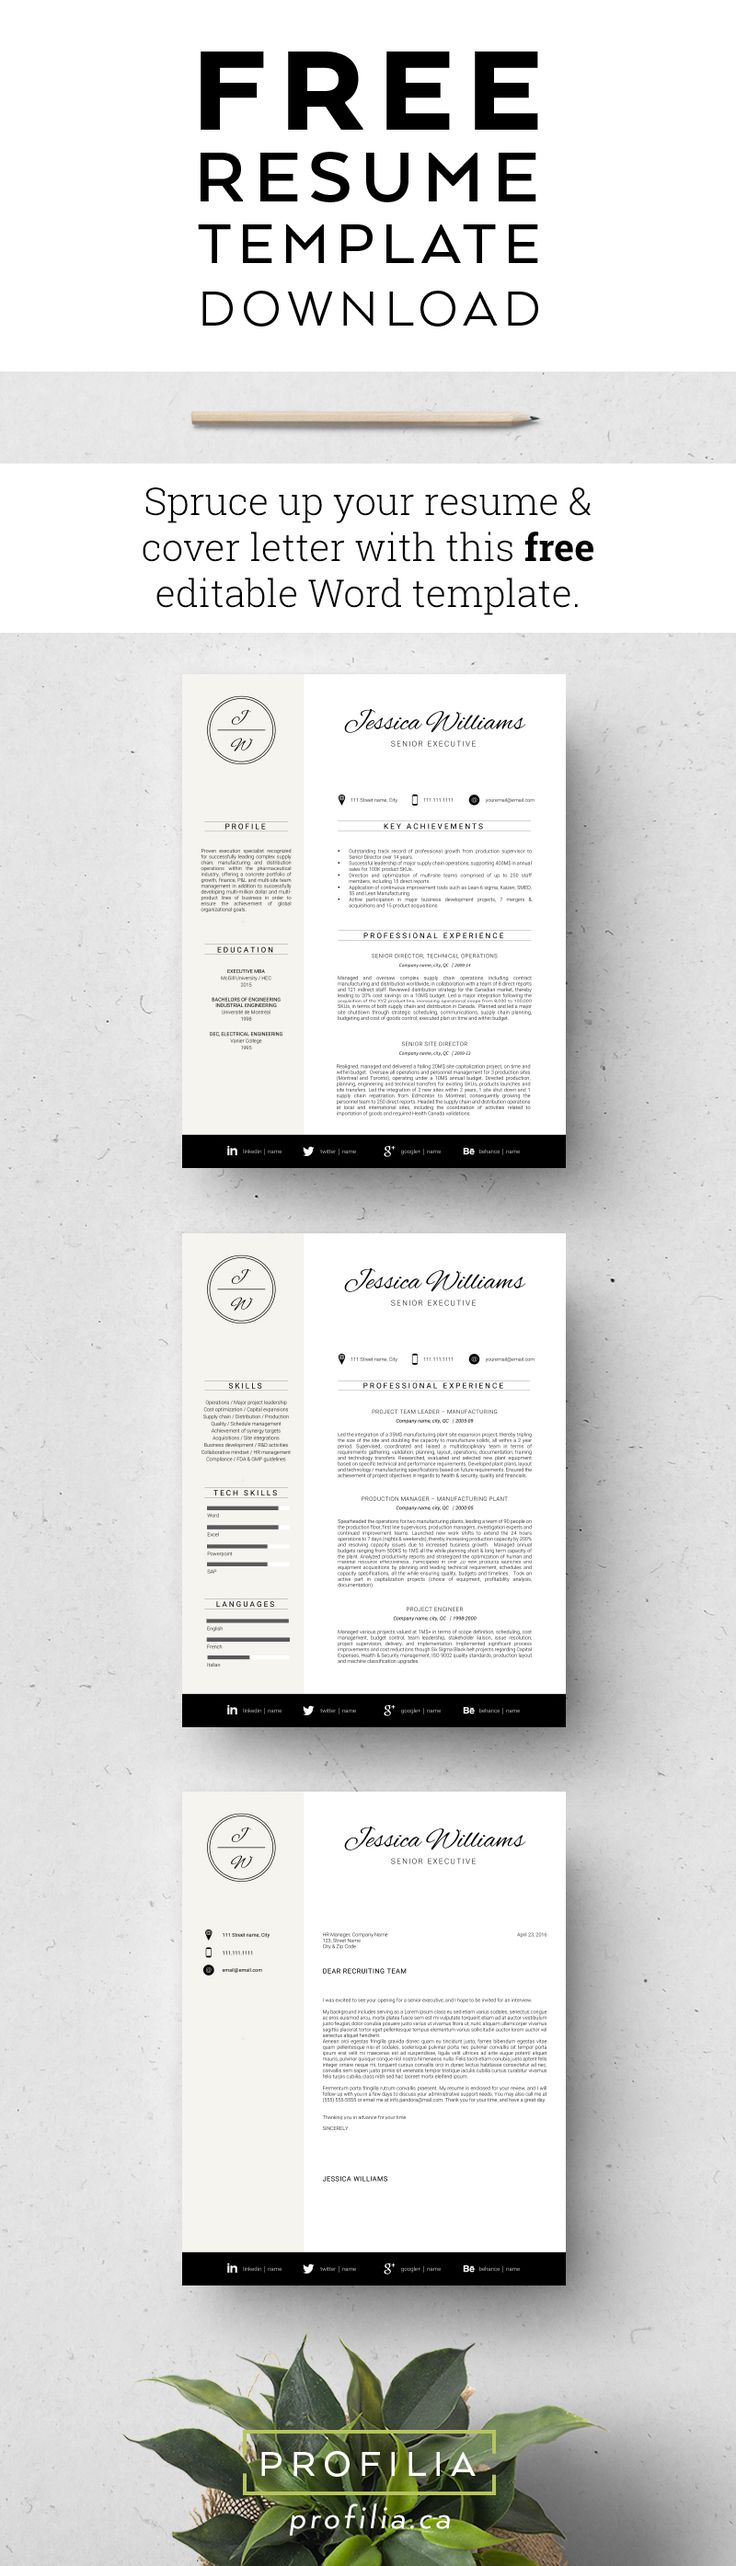 1000 images about biodata for marriage samples on pinterest - Free Resume Template Refresh Your Job Search With This Free Resume Cover